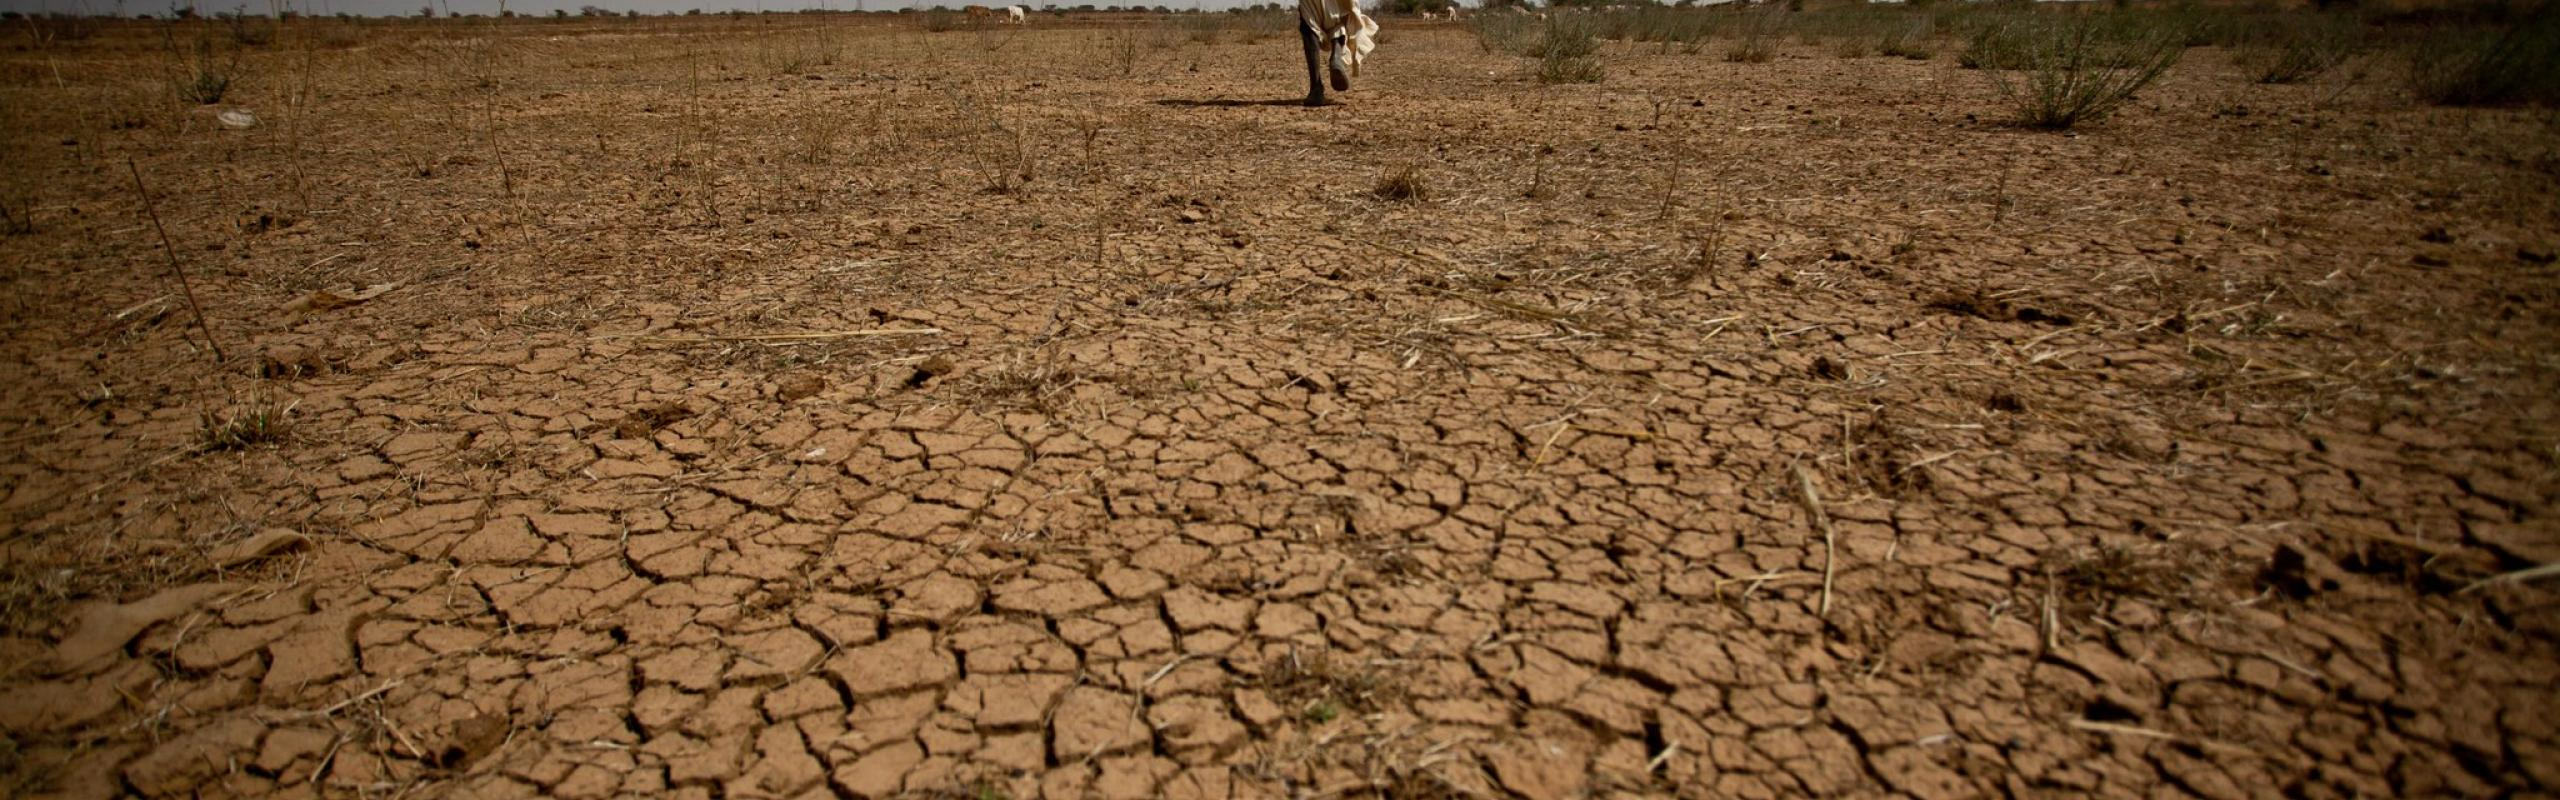 African farmer walking across parched land